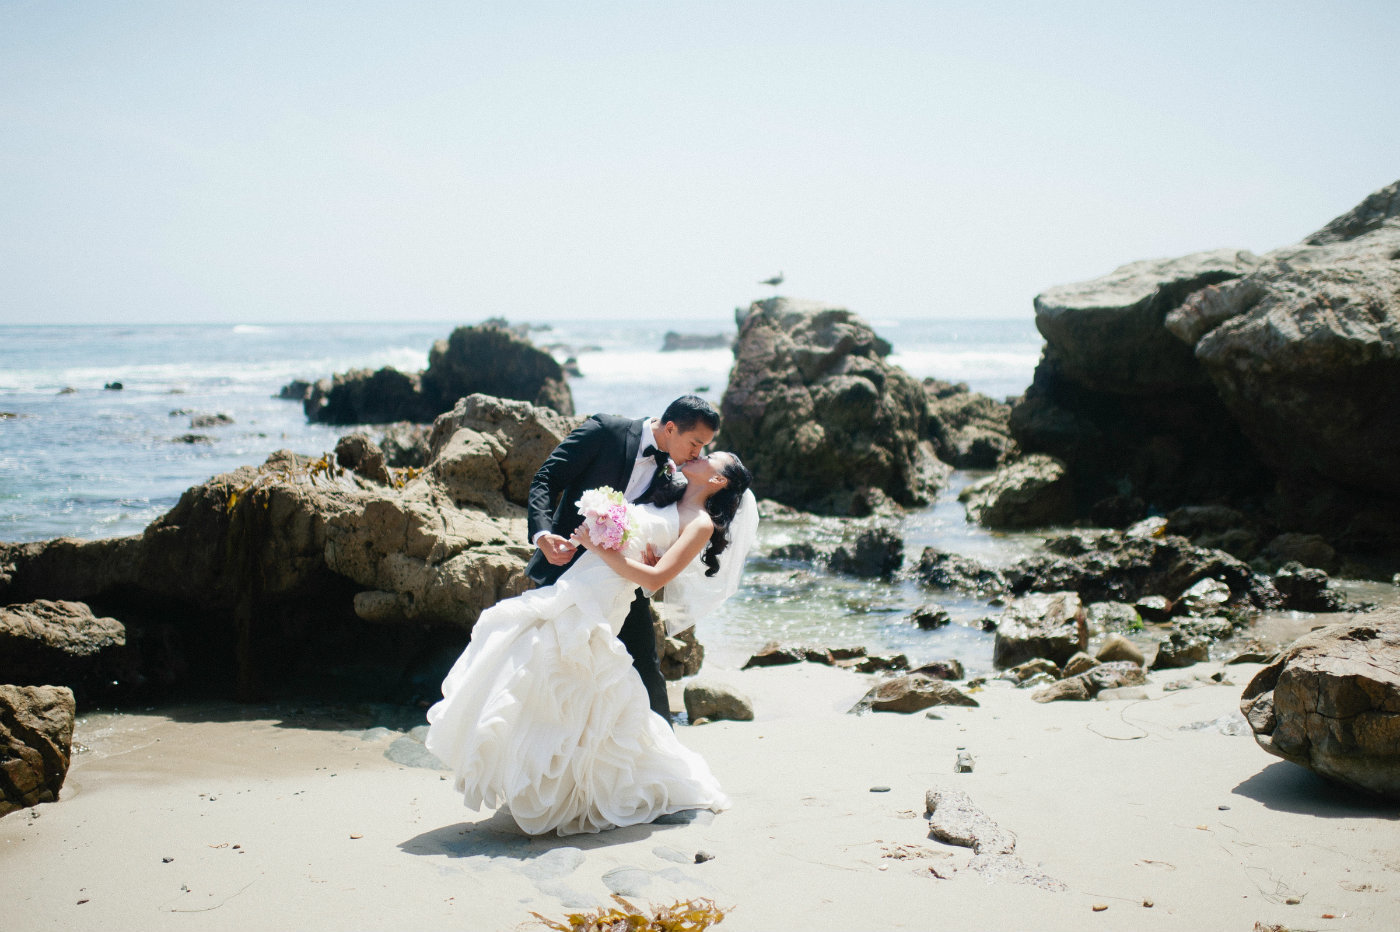 lanny_and_richard___carissa_woo_photography_65